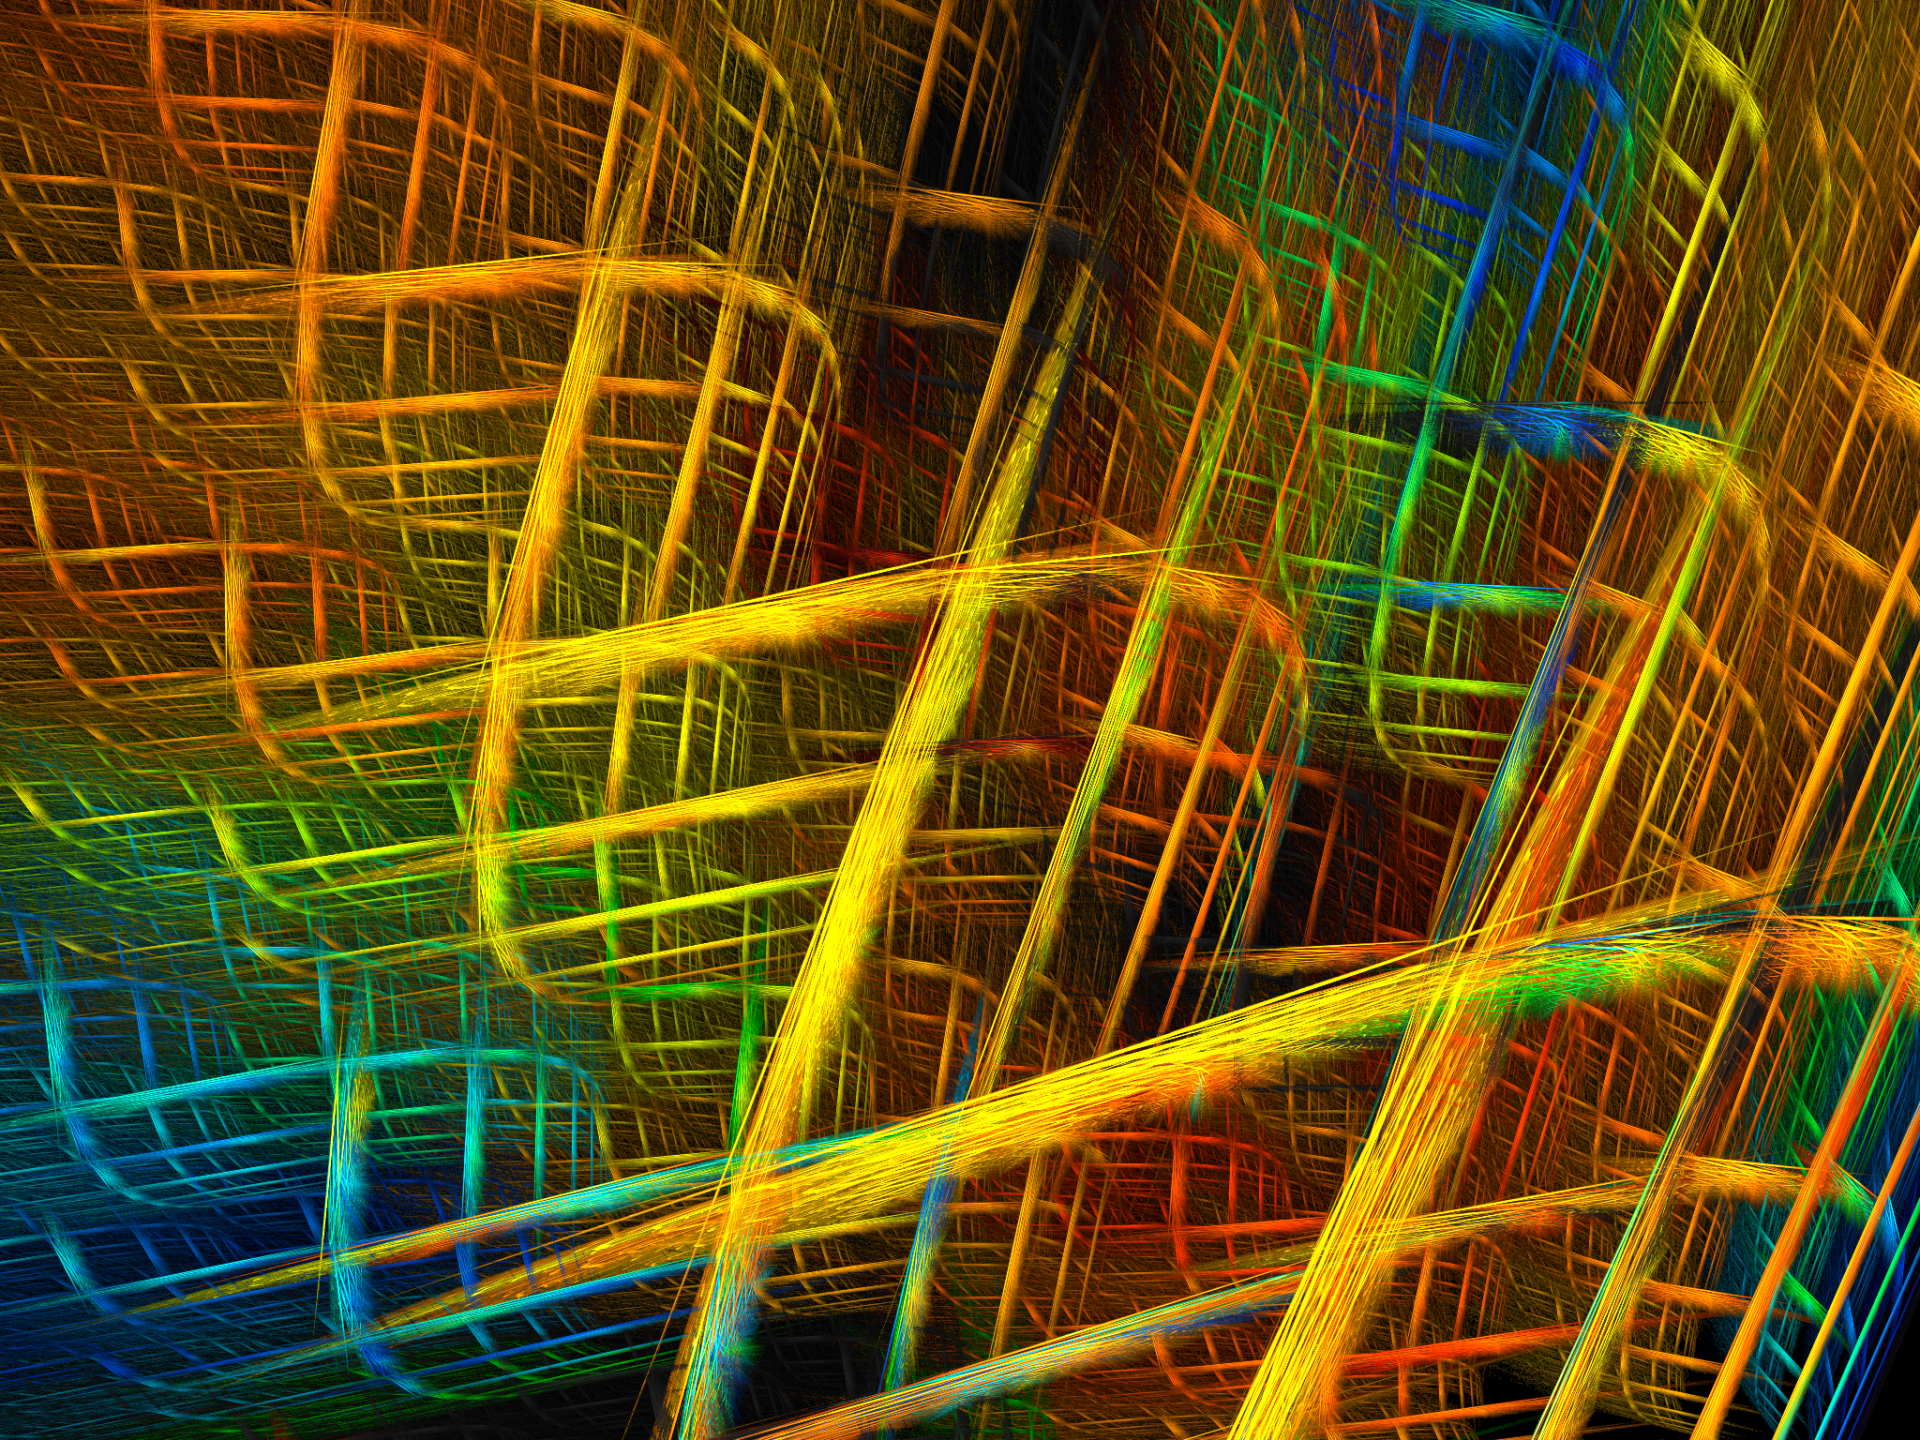 Abstract - Fractal  Digital Abstract Apophysis (software) Colorful Lines Digital Art Artistic Wallpaper